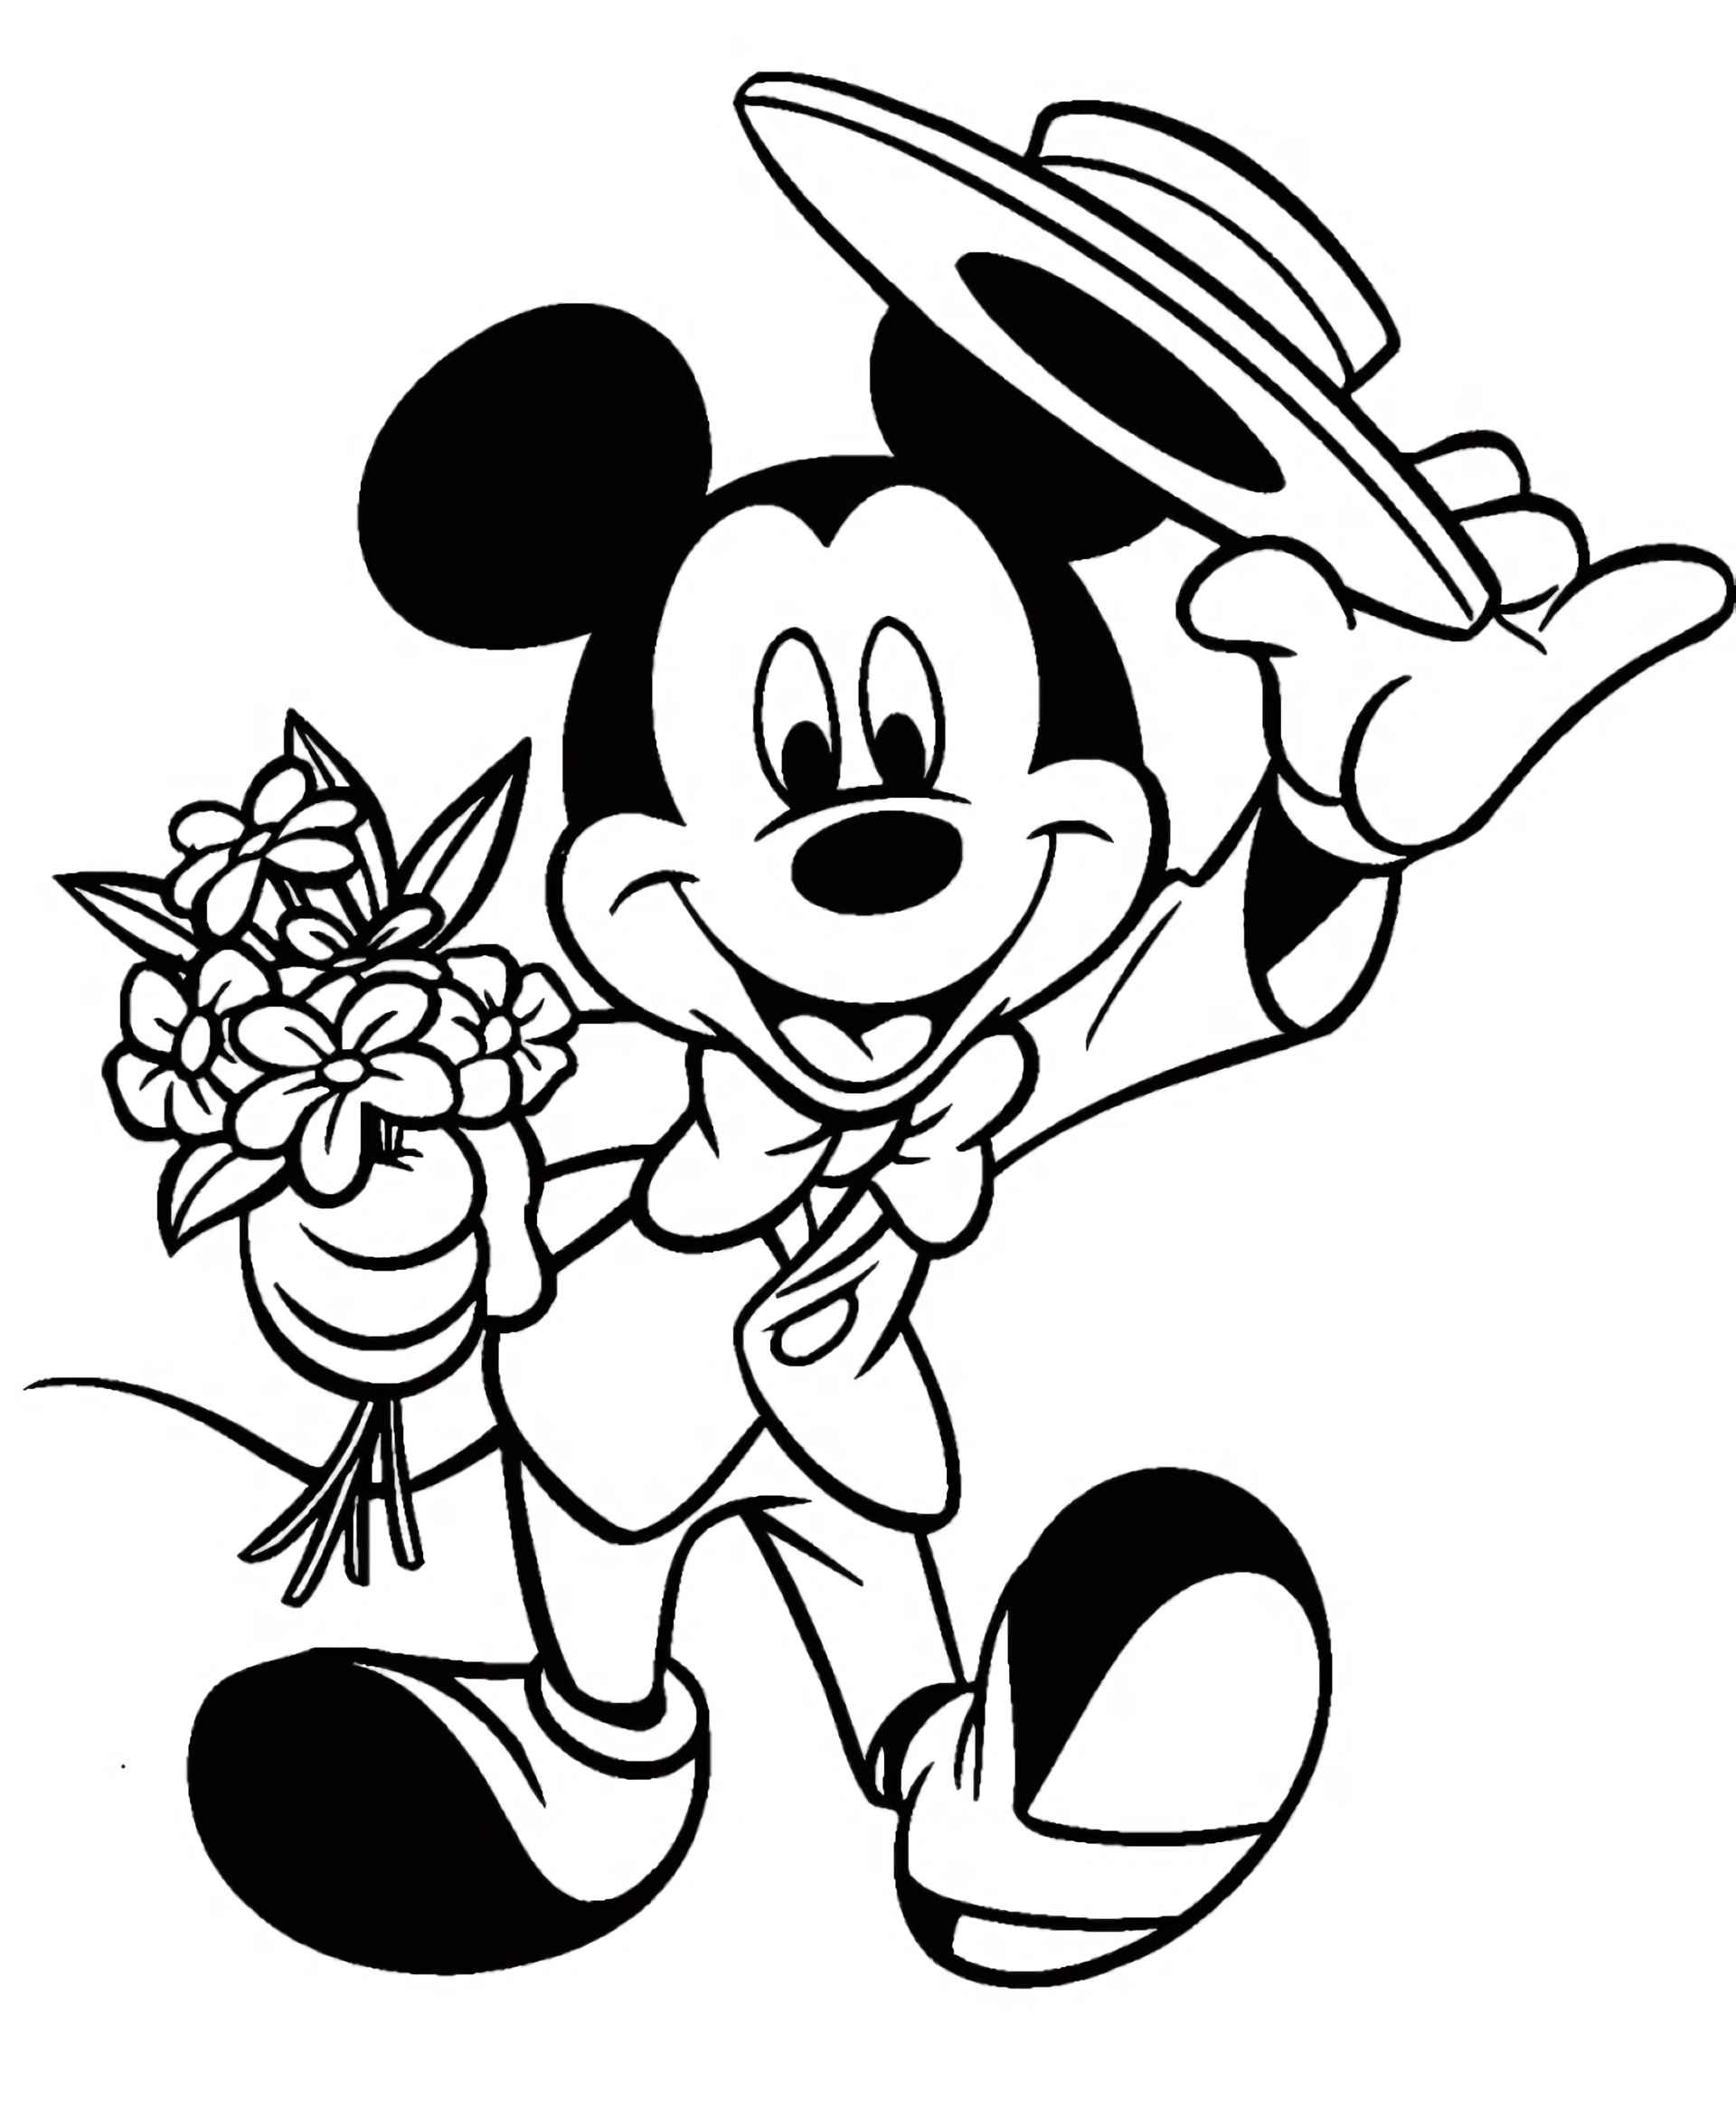 Mickey Mouse In A Suit With Flowers Coloring Page